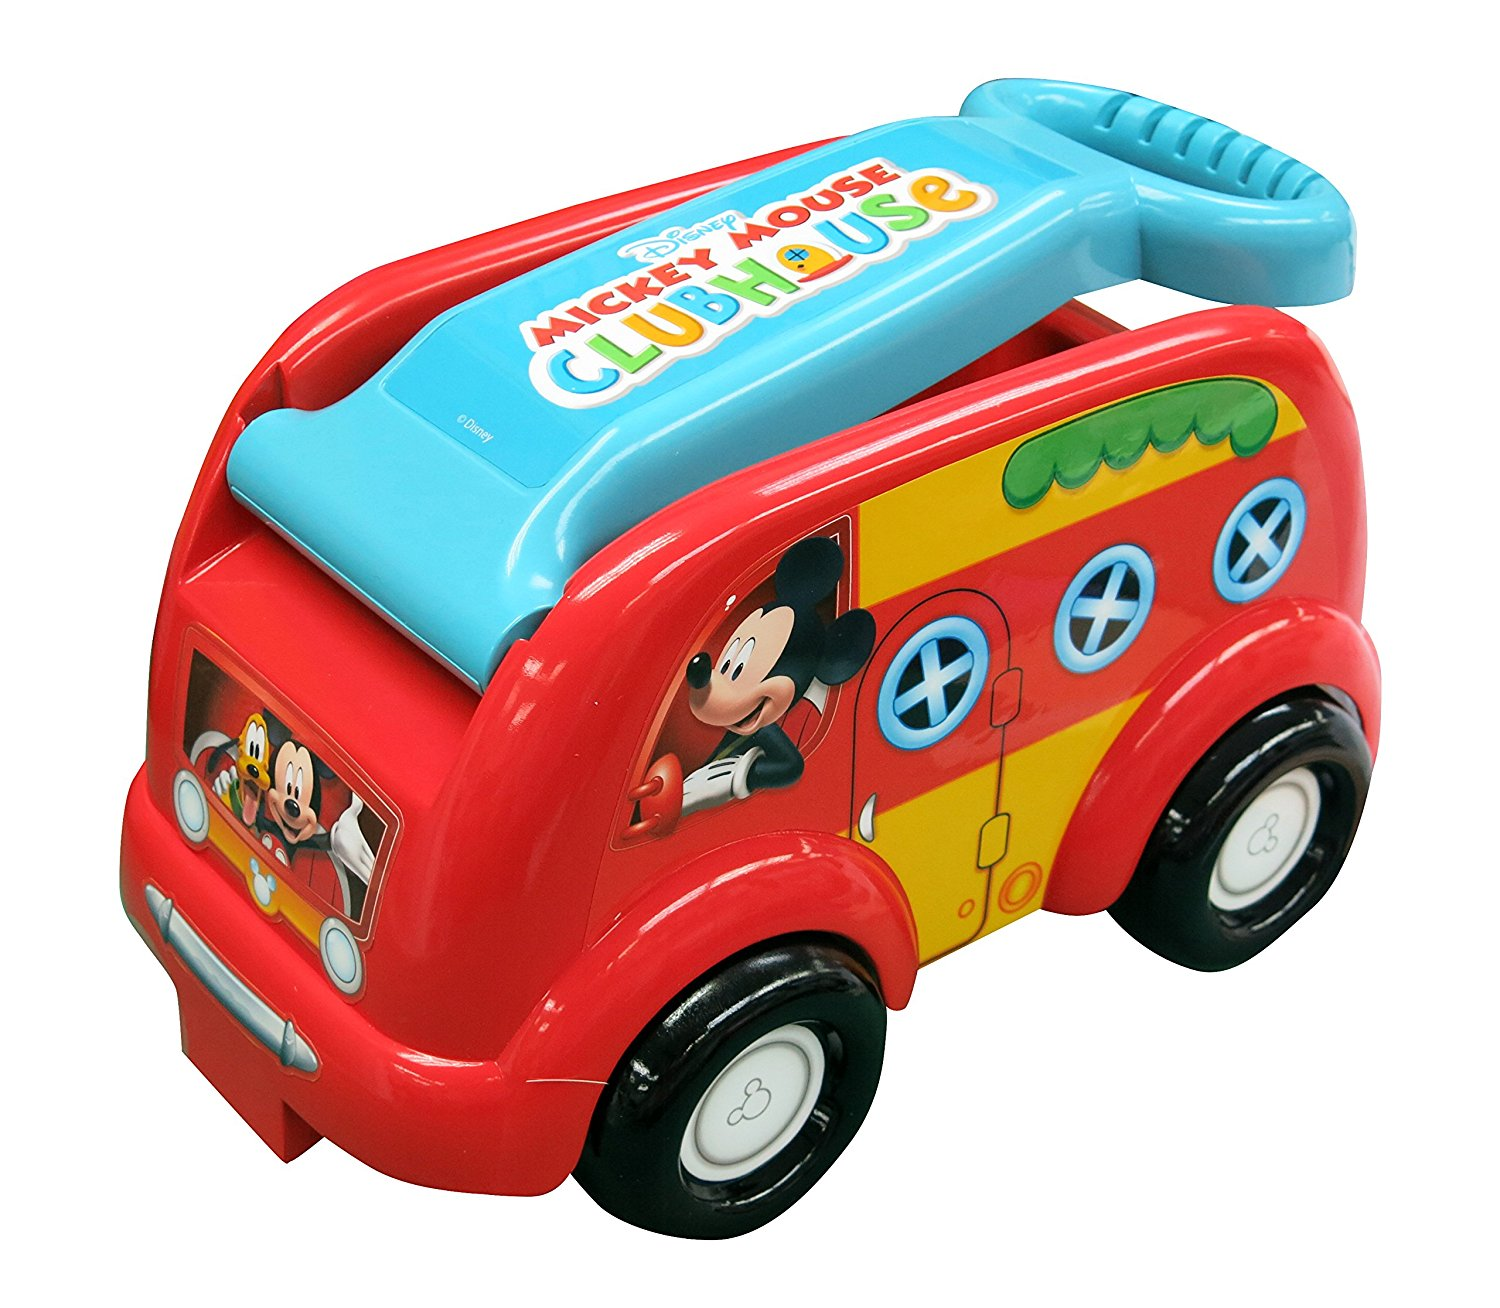 Club House Camping Fun Roll N Go Wagon Ride-On, USA, Brand Mickey Mouse by